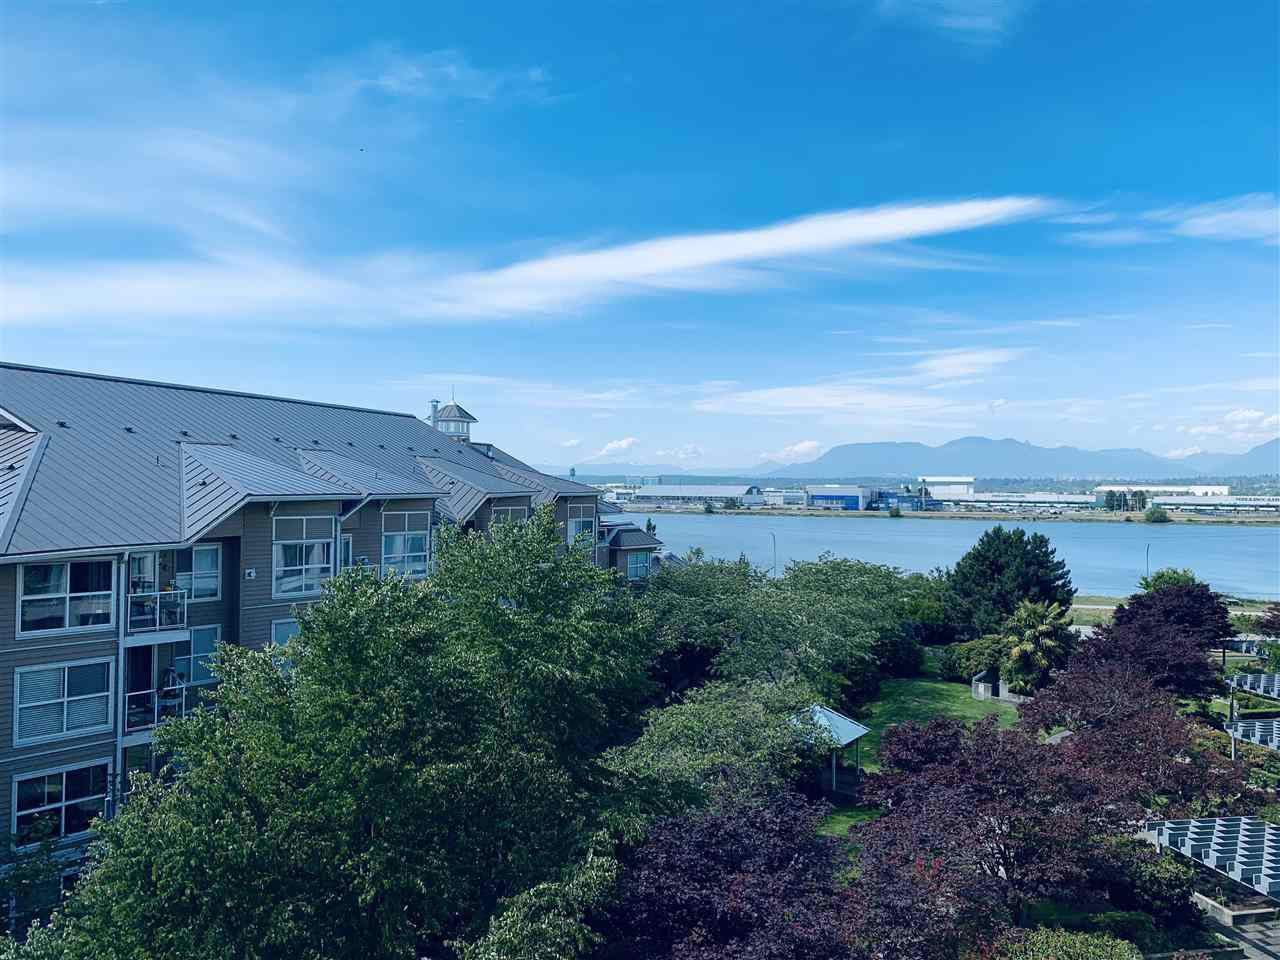 """Main Photo: 502 5860 DOVER Crescent in Richmond: Riverdale RI Condo for sale in """"LIGHTHOUSE PLACE"""" : MLS®# R2351656"""